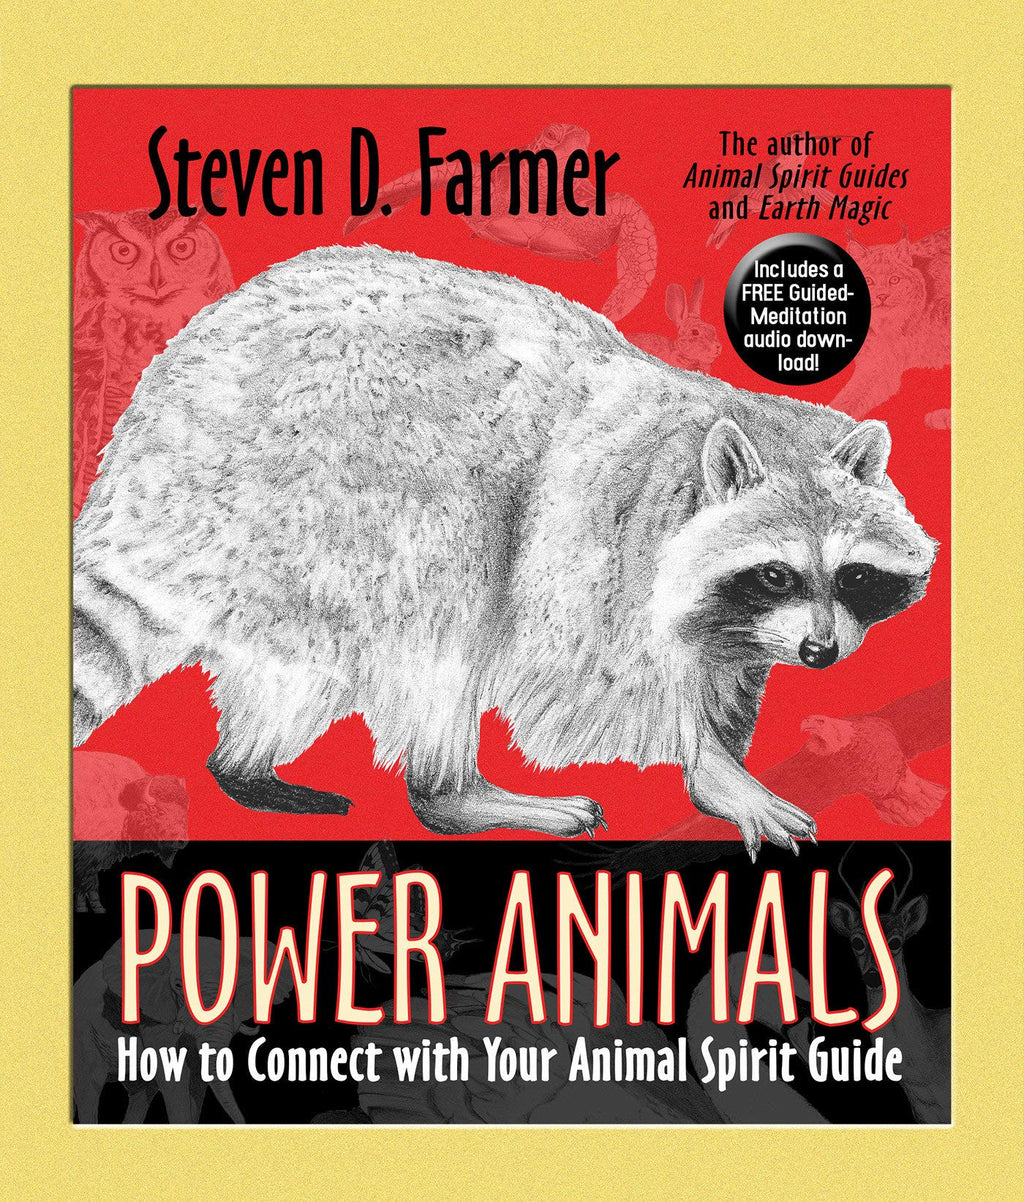 Power Animals by Steven Farmer